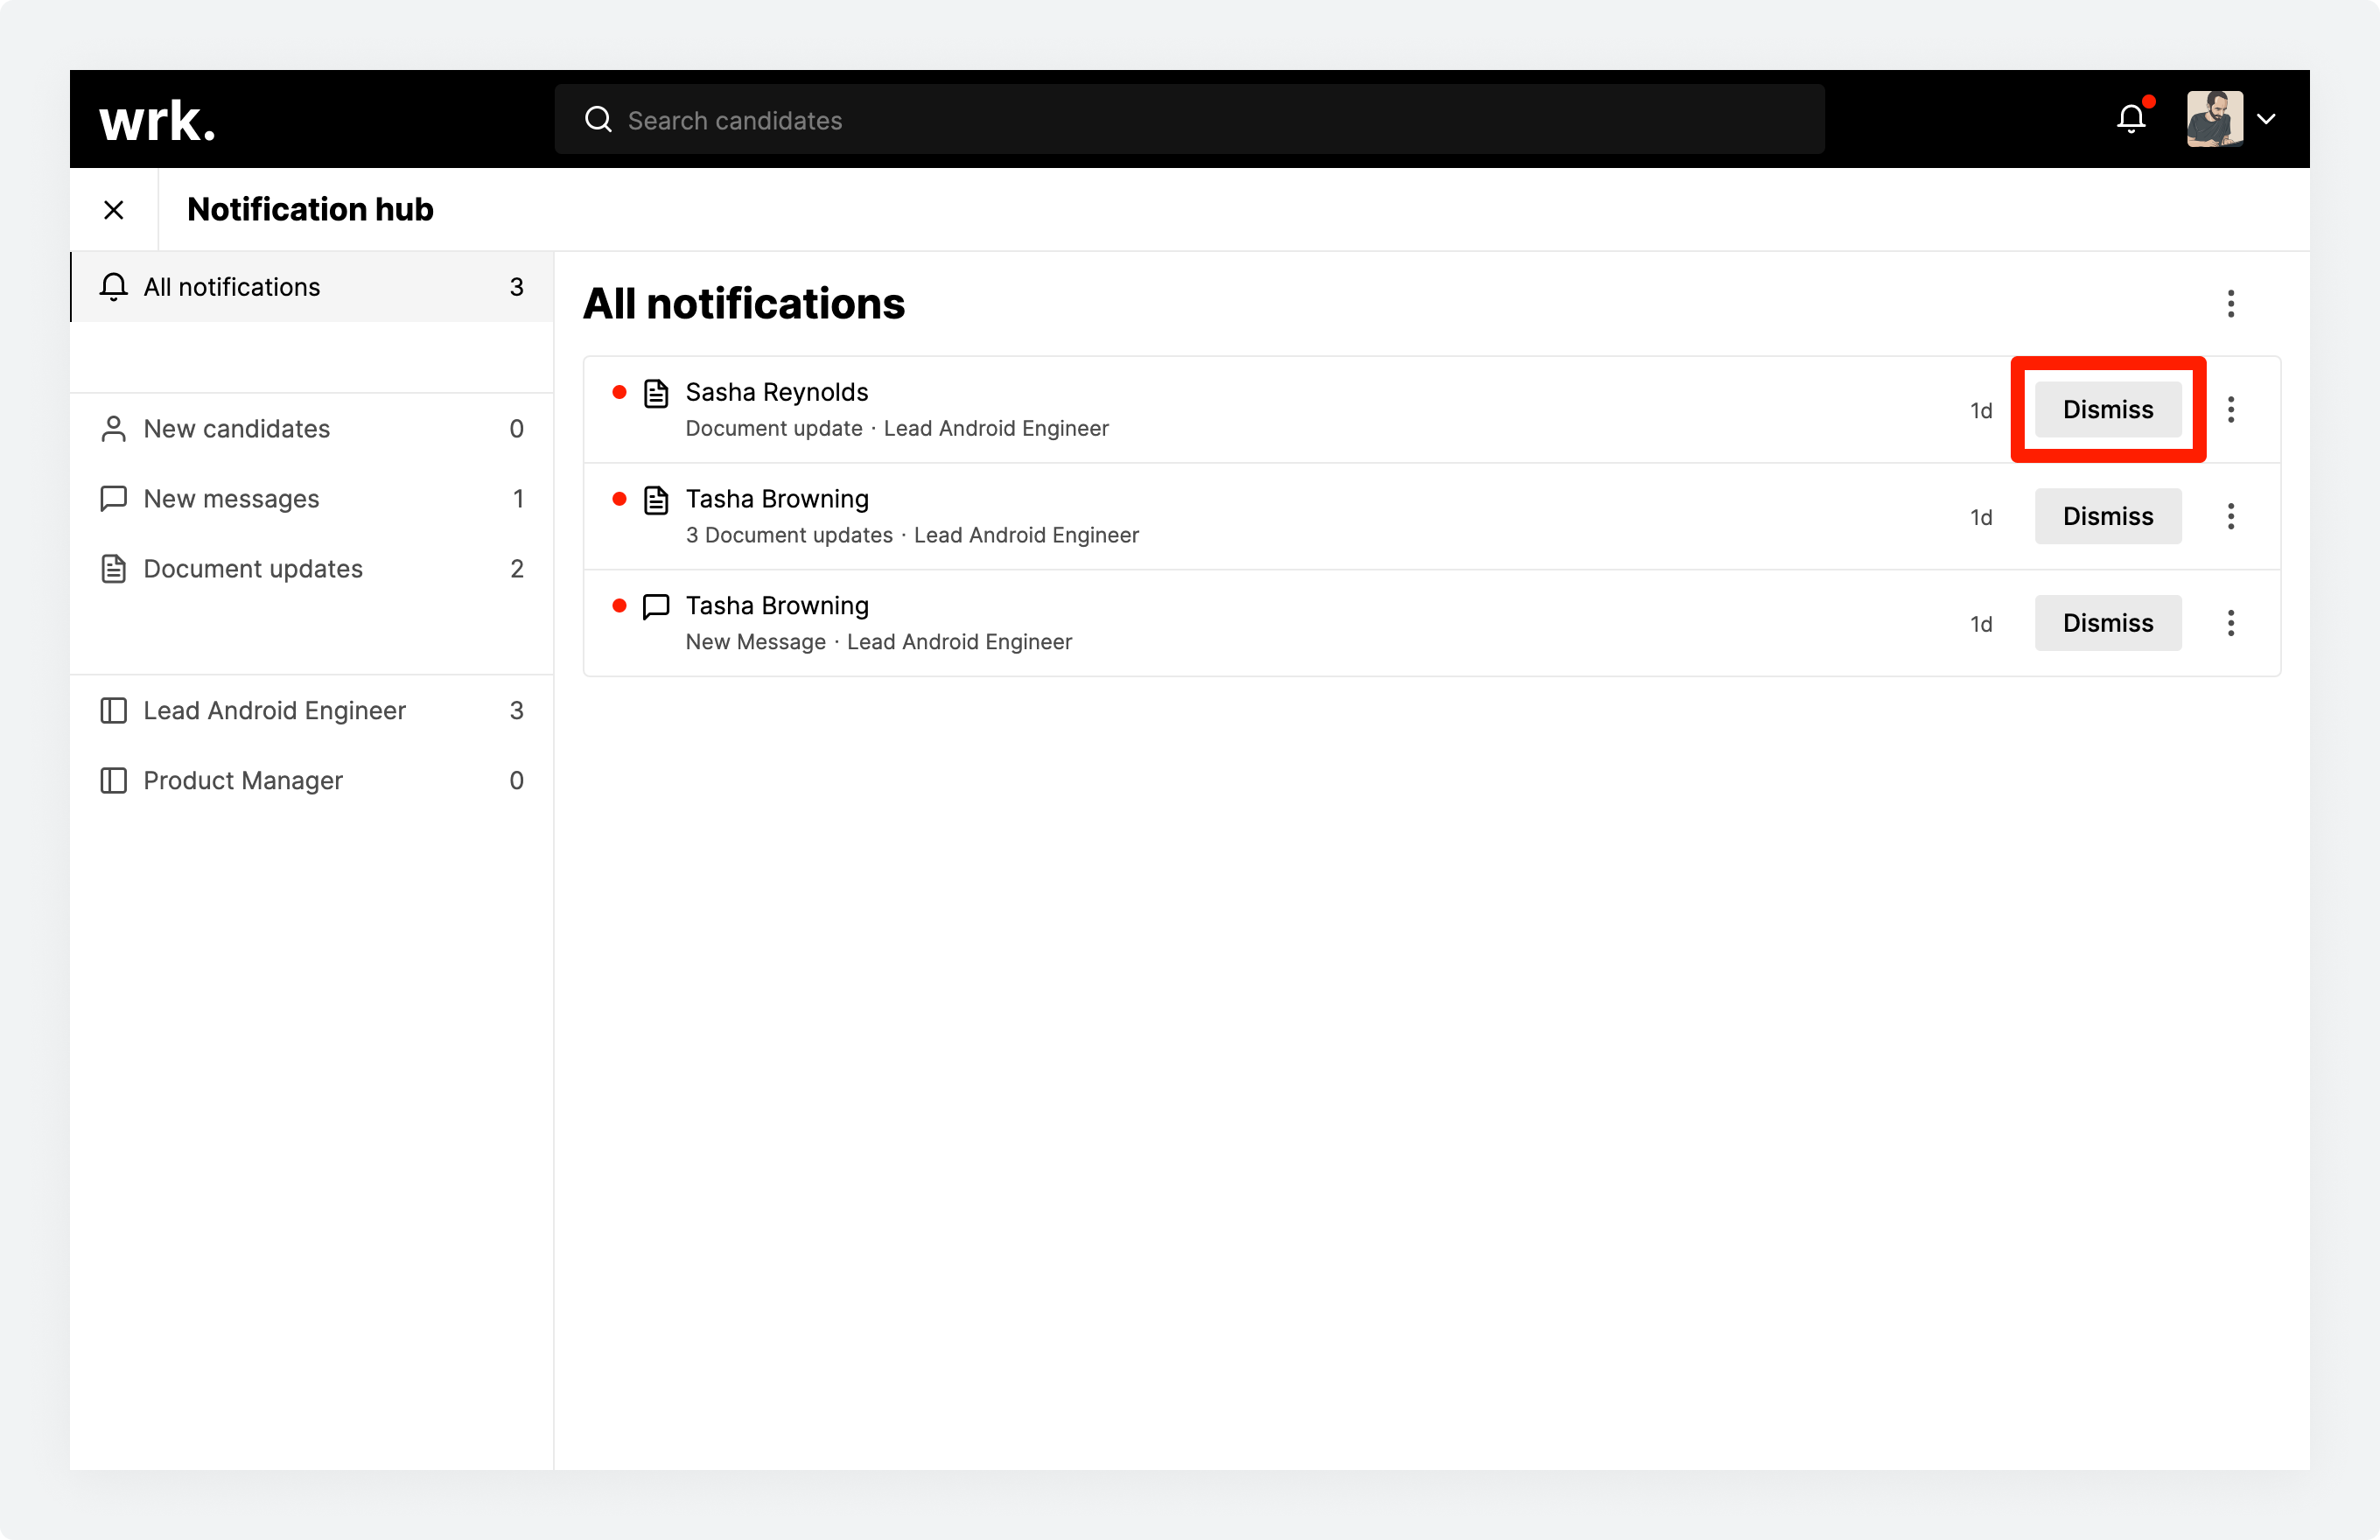 The notification hub in Wrk with a notification's dismiss button highlighted